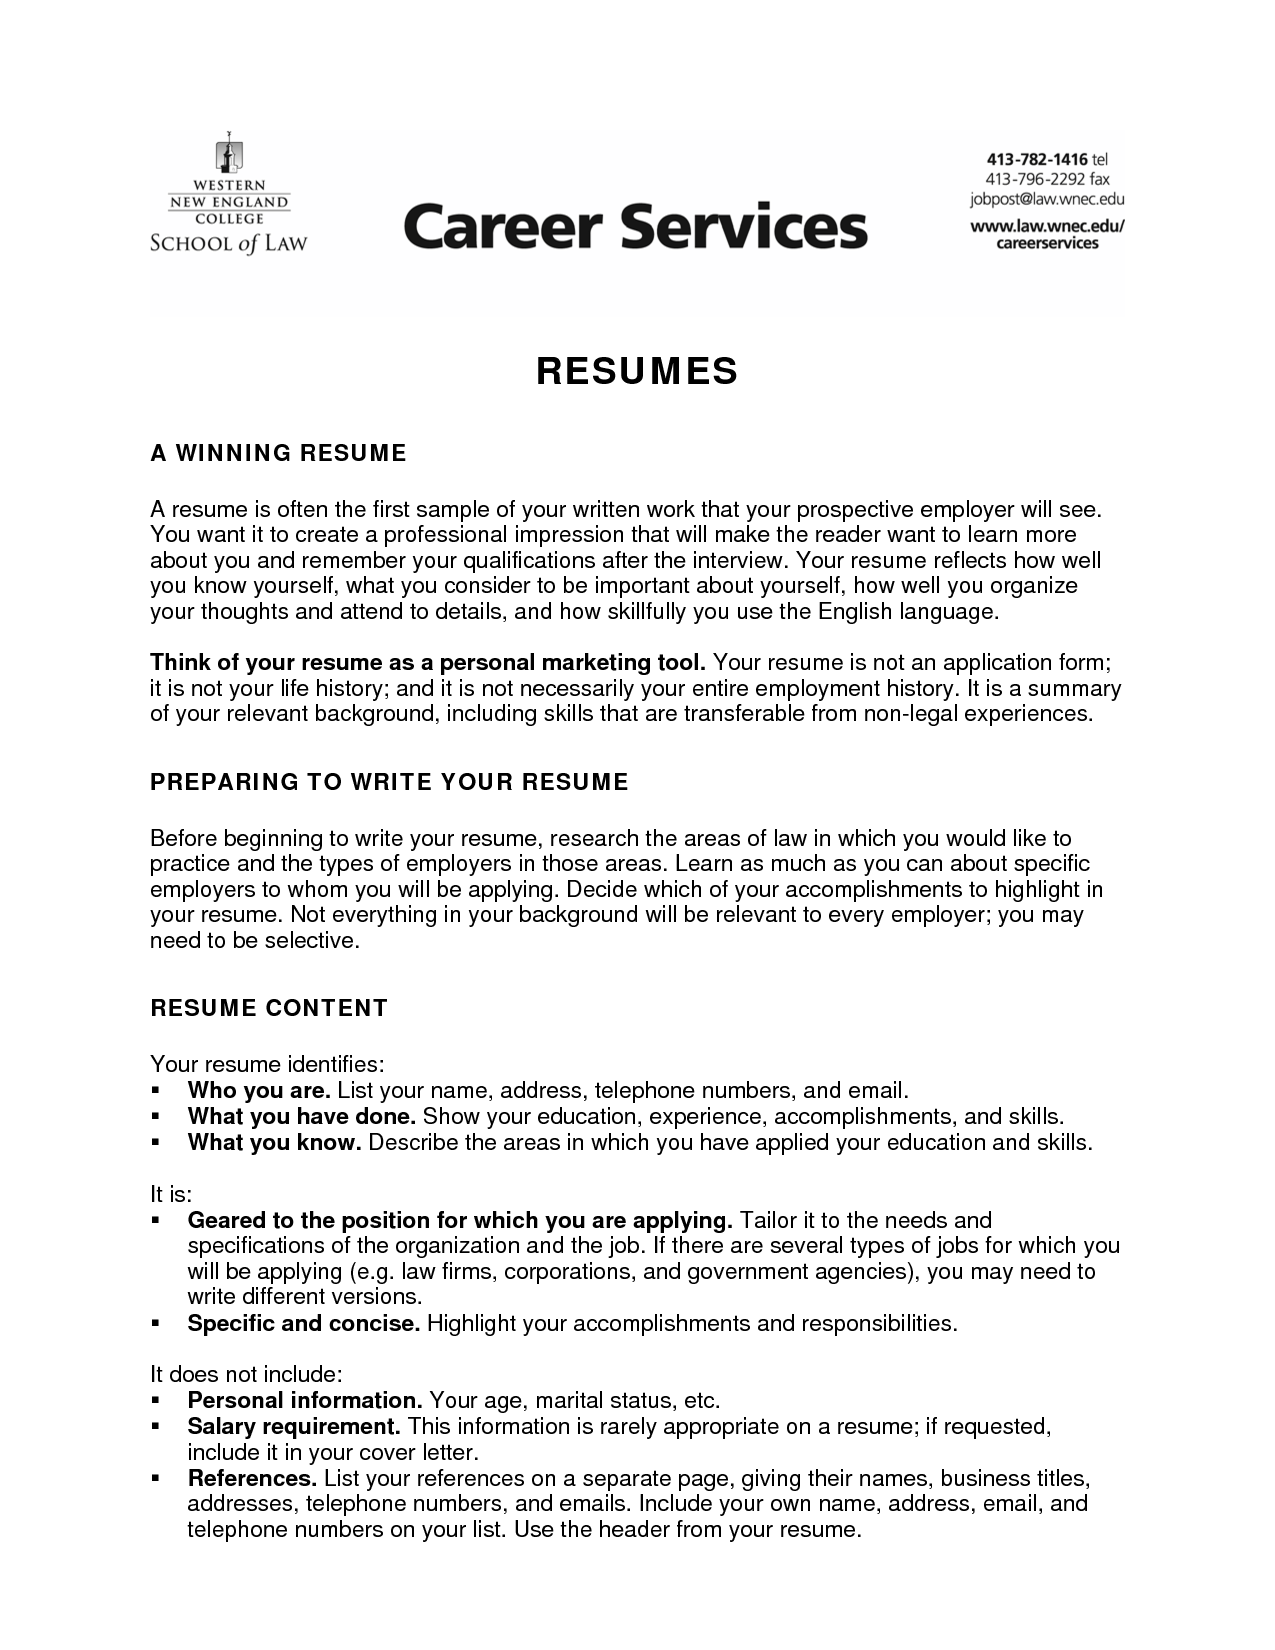 mechanical engineering student resume sample resume objective for – Resume Objective for Accounting Job